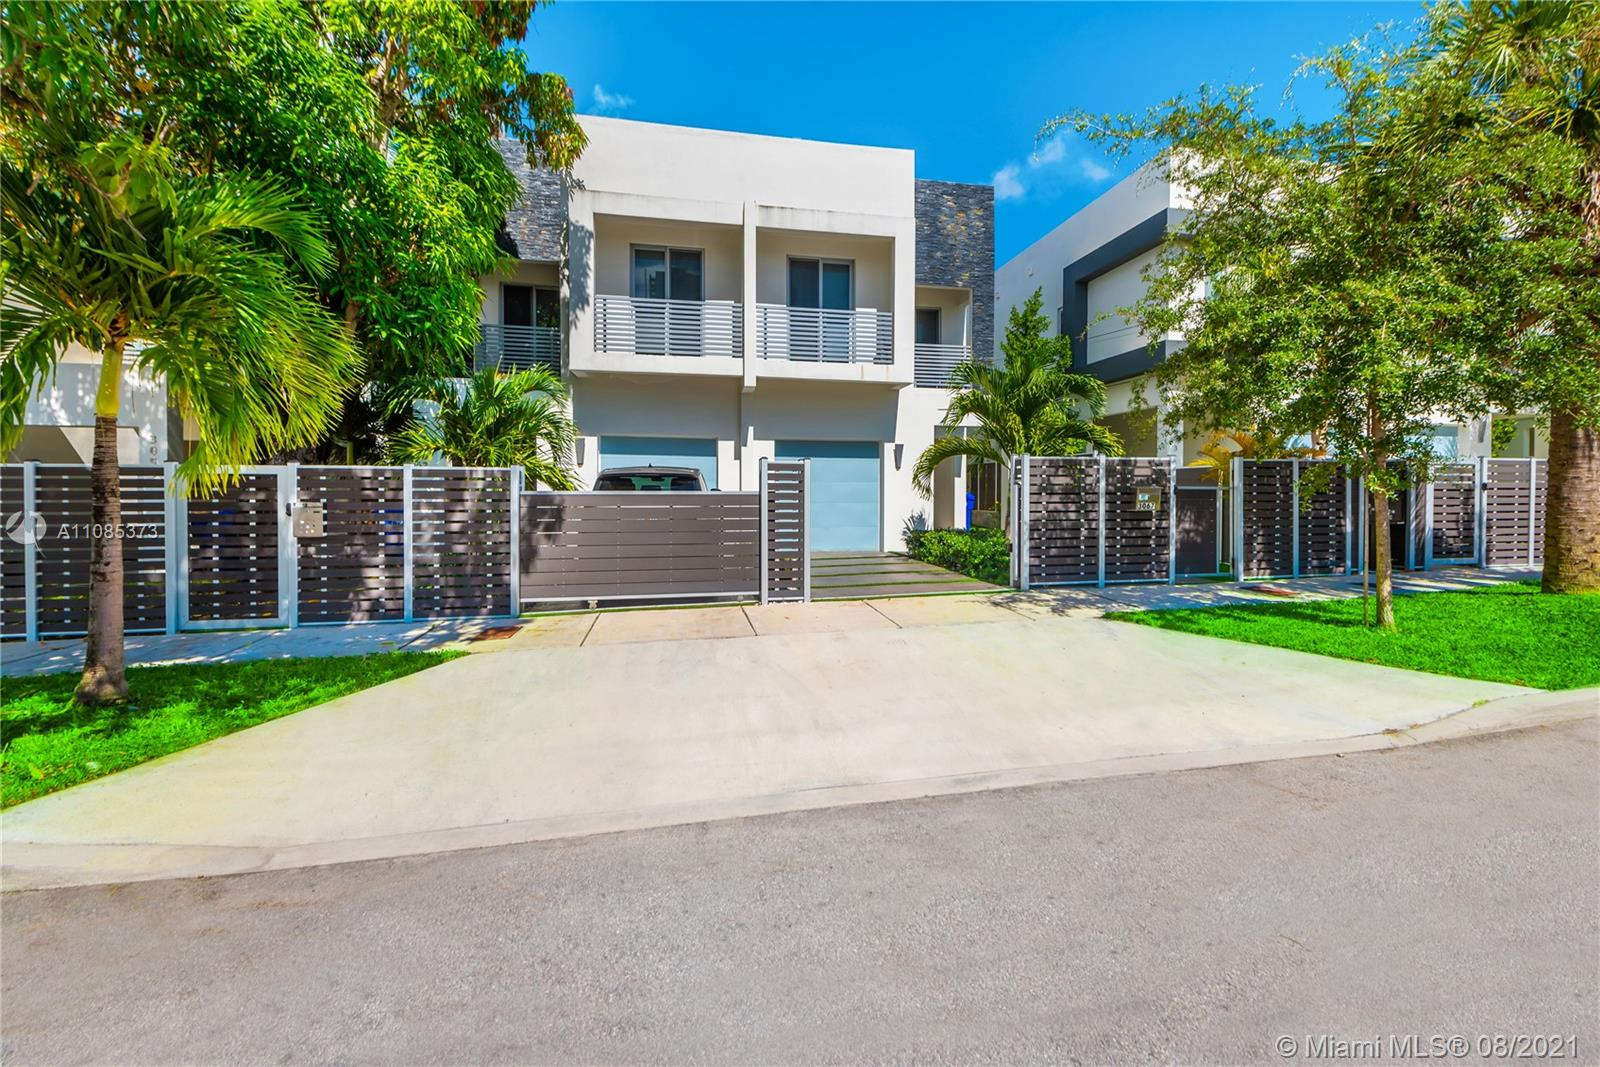 Immaculate newer construction townhome in Coconut Grove! This 3 bedroom, 2.5 bath home is available fully furnished and equipped. Featuring porcelain tile throughout, designer kitchen with built in wine cooler/ bar, one car garage with epoxy flooring, impact windows and doors and an extra large master walk-in closet. This residence is set up with exterior cameras, RING doorbell, and is fully gated and fenced in. Enjoy the Miami lifestyle with your own private pool with waterfall feature, BBQ and plenty of fashionable seating. Easy to maintain yard with astroturf. Close to downtown Coconut Grove restaurants and shops, marina, parks, dog park. Close to Coral Gables, Brickell, Downtown, University of Miami and more.